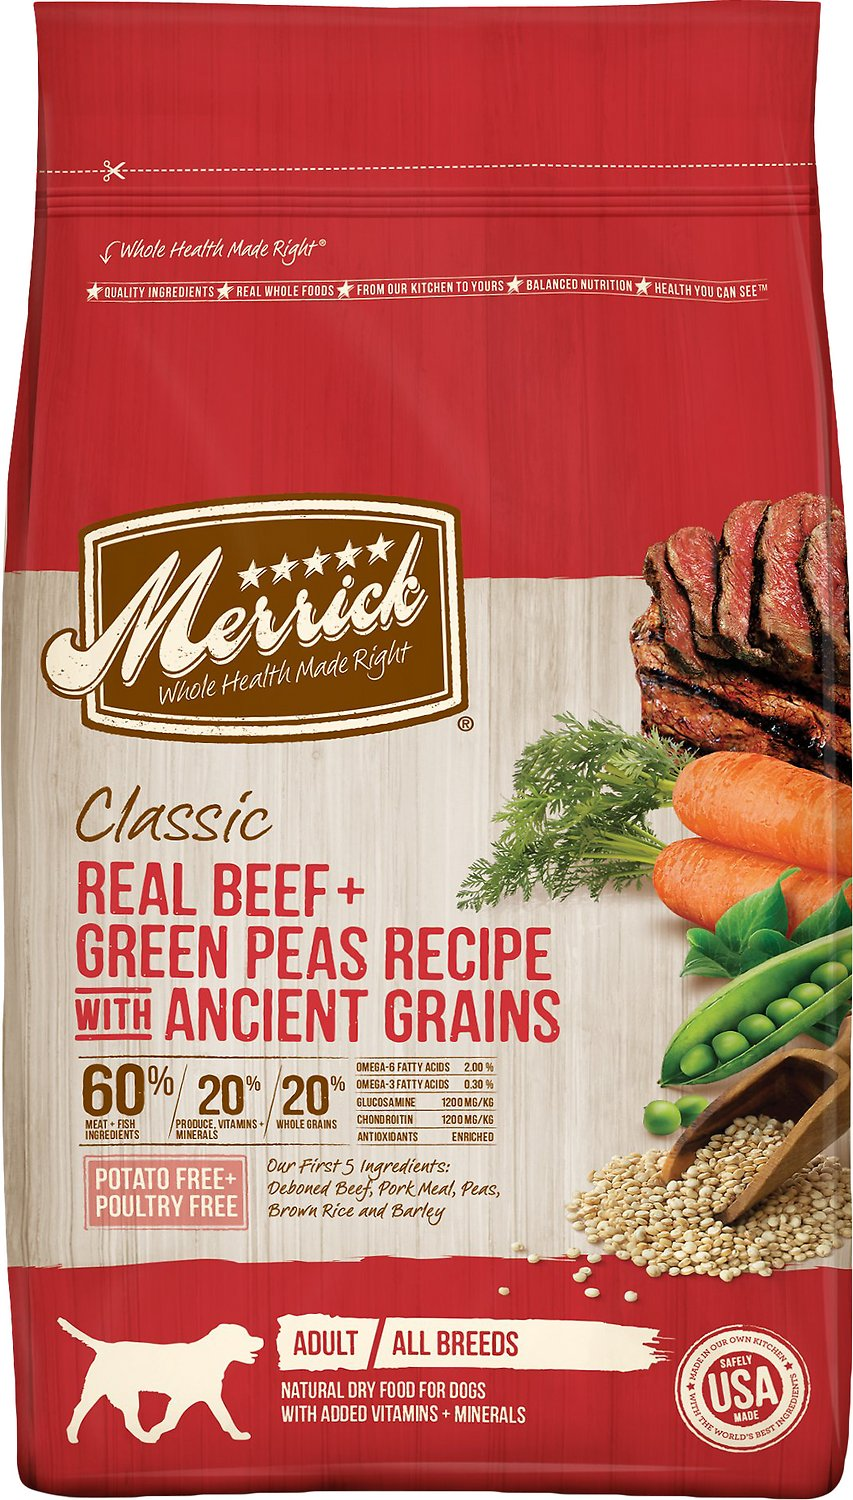 Merrick Classic Real Beef + Green Peas Recipe with Ancient Grains Adult Dry Dog Food Image